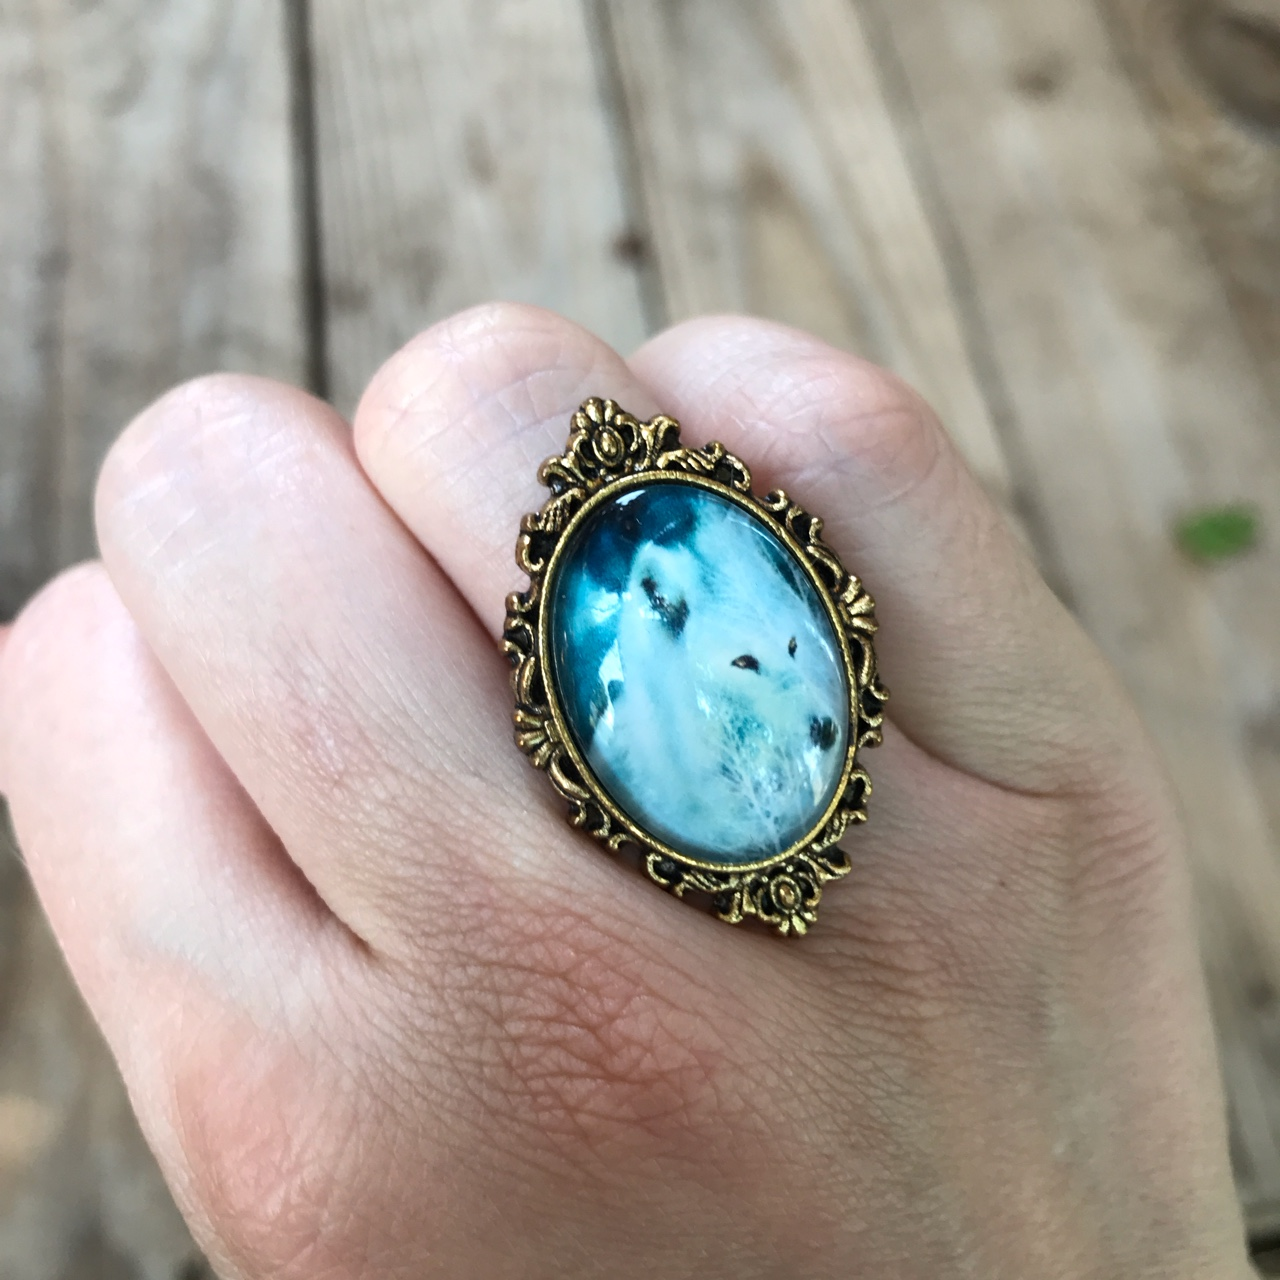 Product Image 1 - White wolf ring. Glass cameo